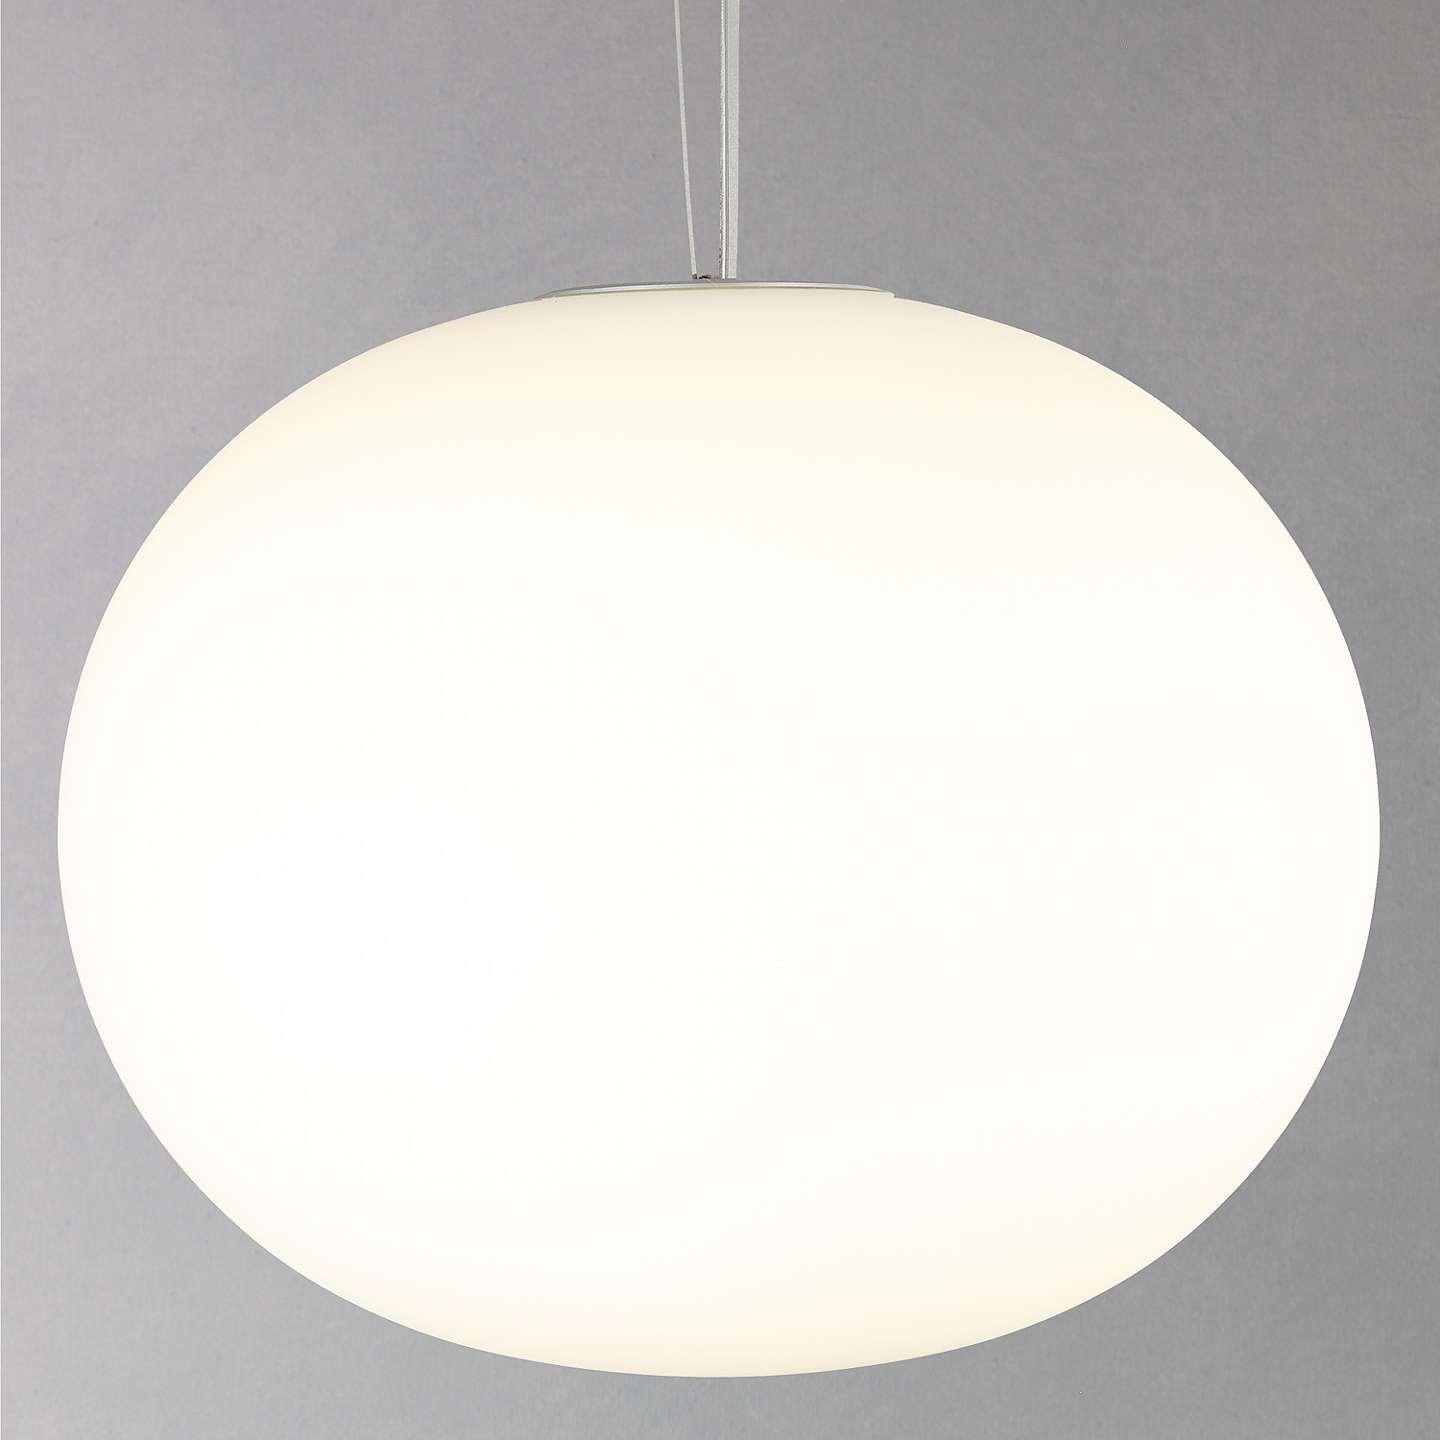 Flos glo ball s1 ceiling light at john lewis buyflos glo ball s1 ceiling light online at johnlewis mozeypictures Gallery